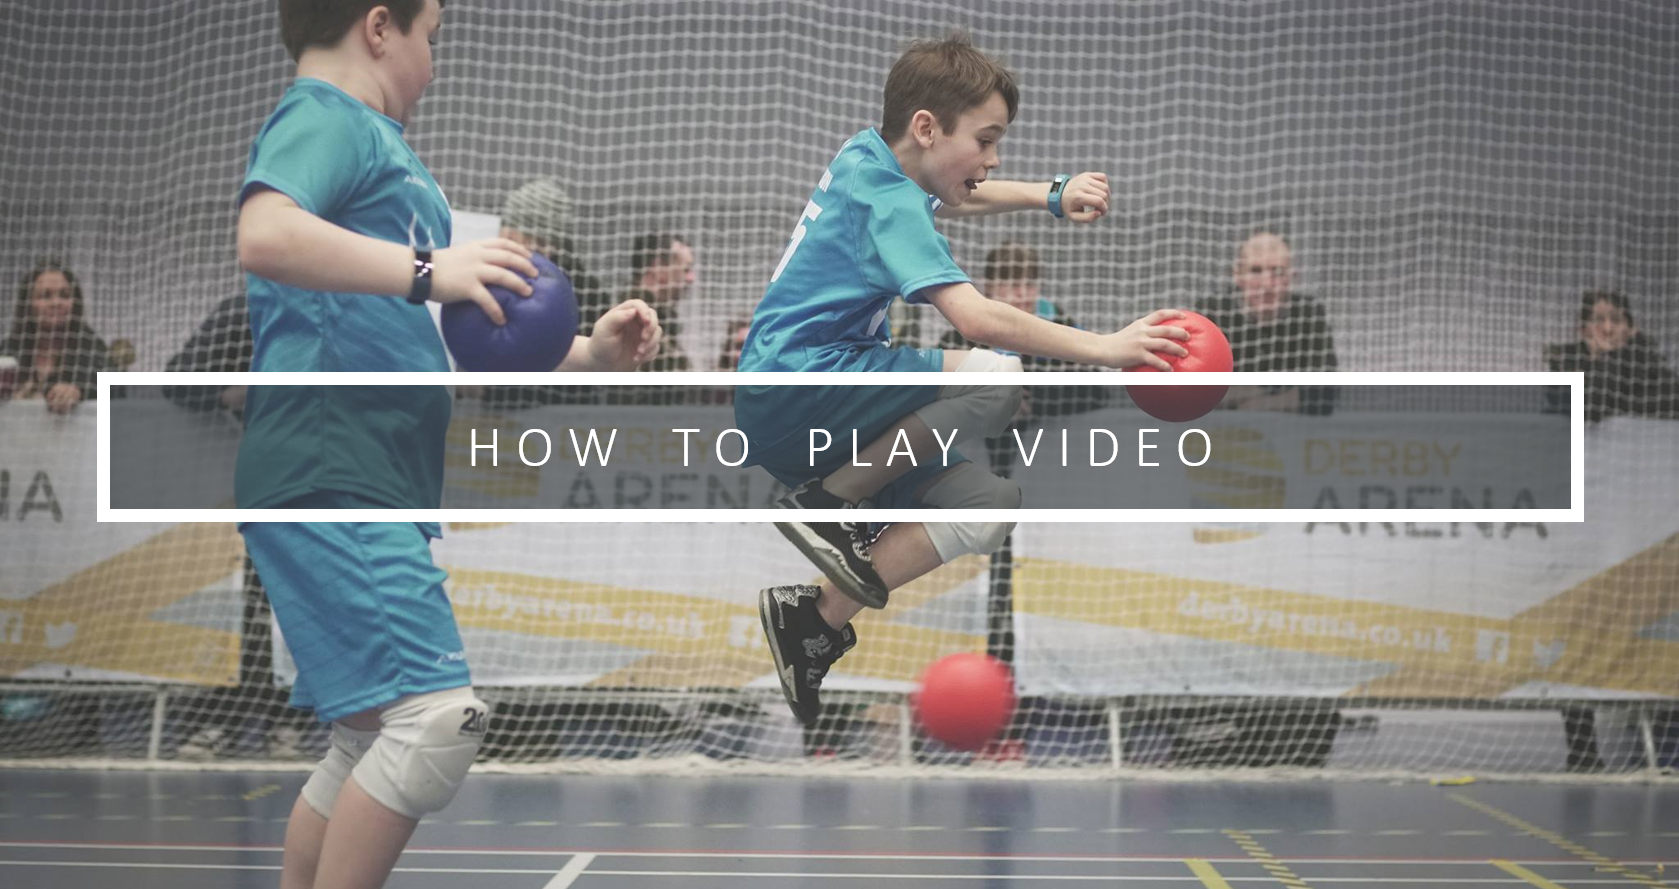 How to Play Video